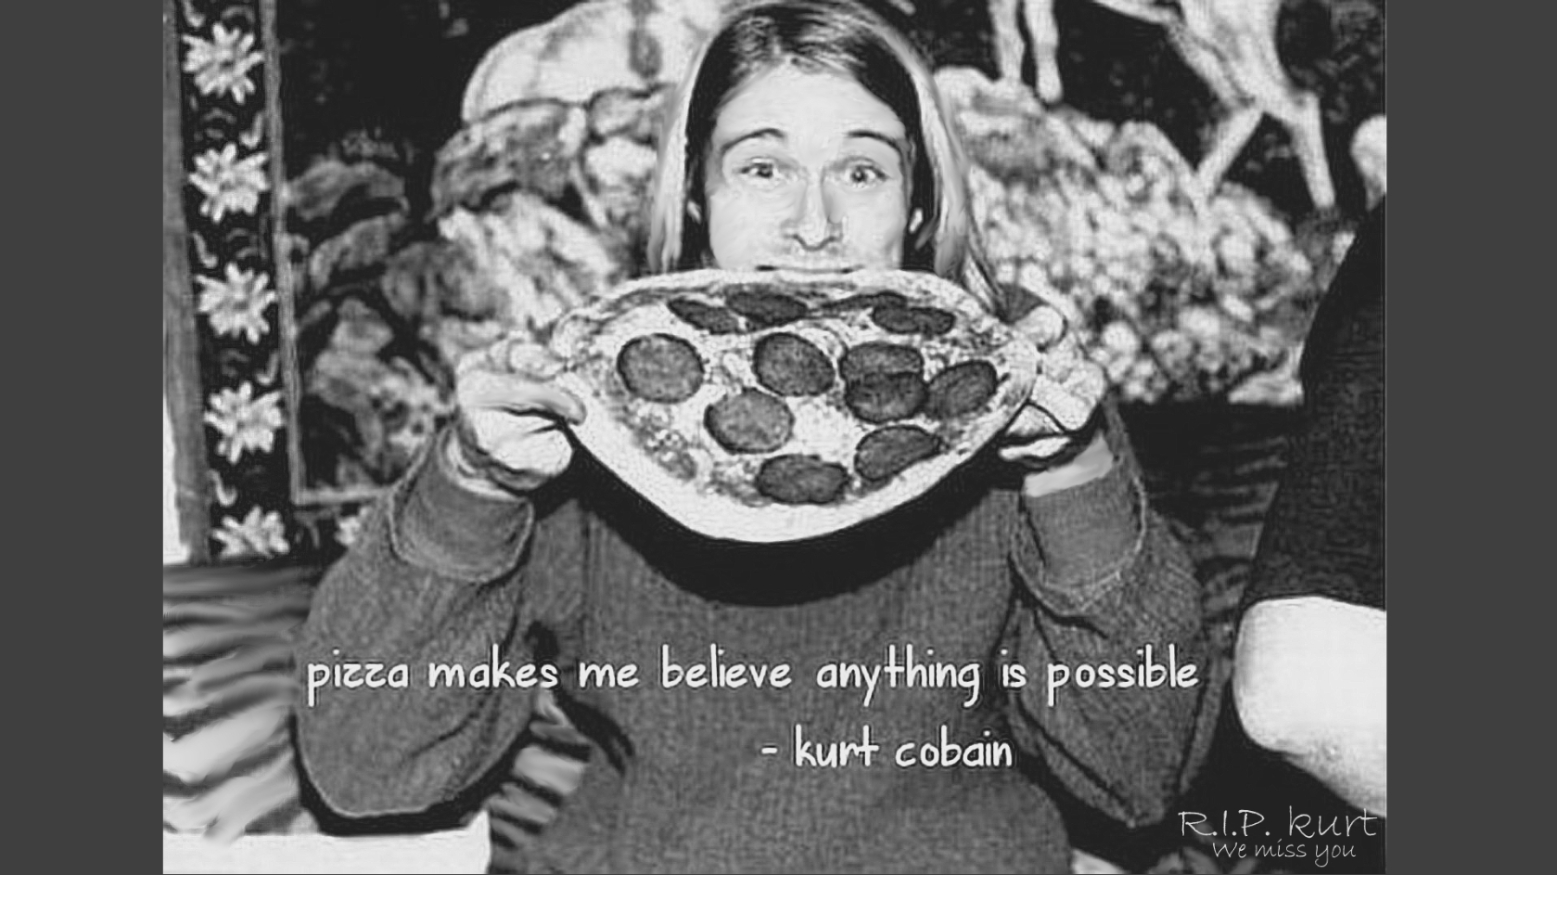 """Black and white image of Kurt Cobain chomping on a whole pizza and text overlay of his quote """"pizza makes me believe anything is possible"""""""